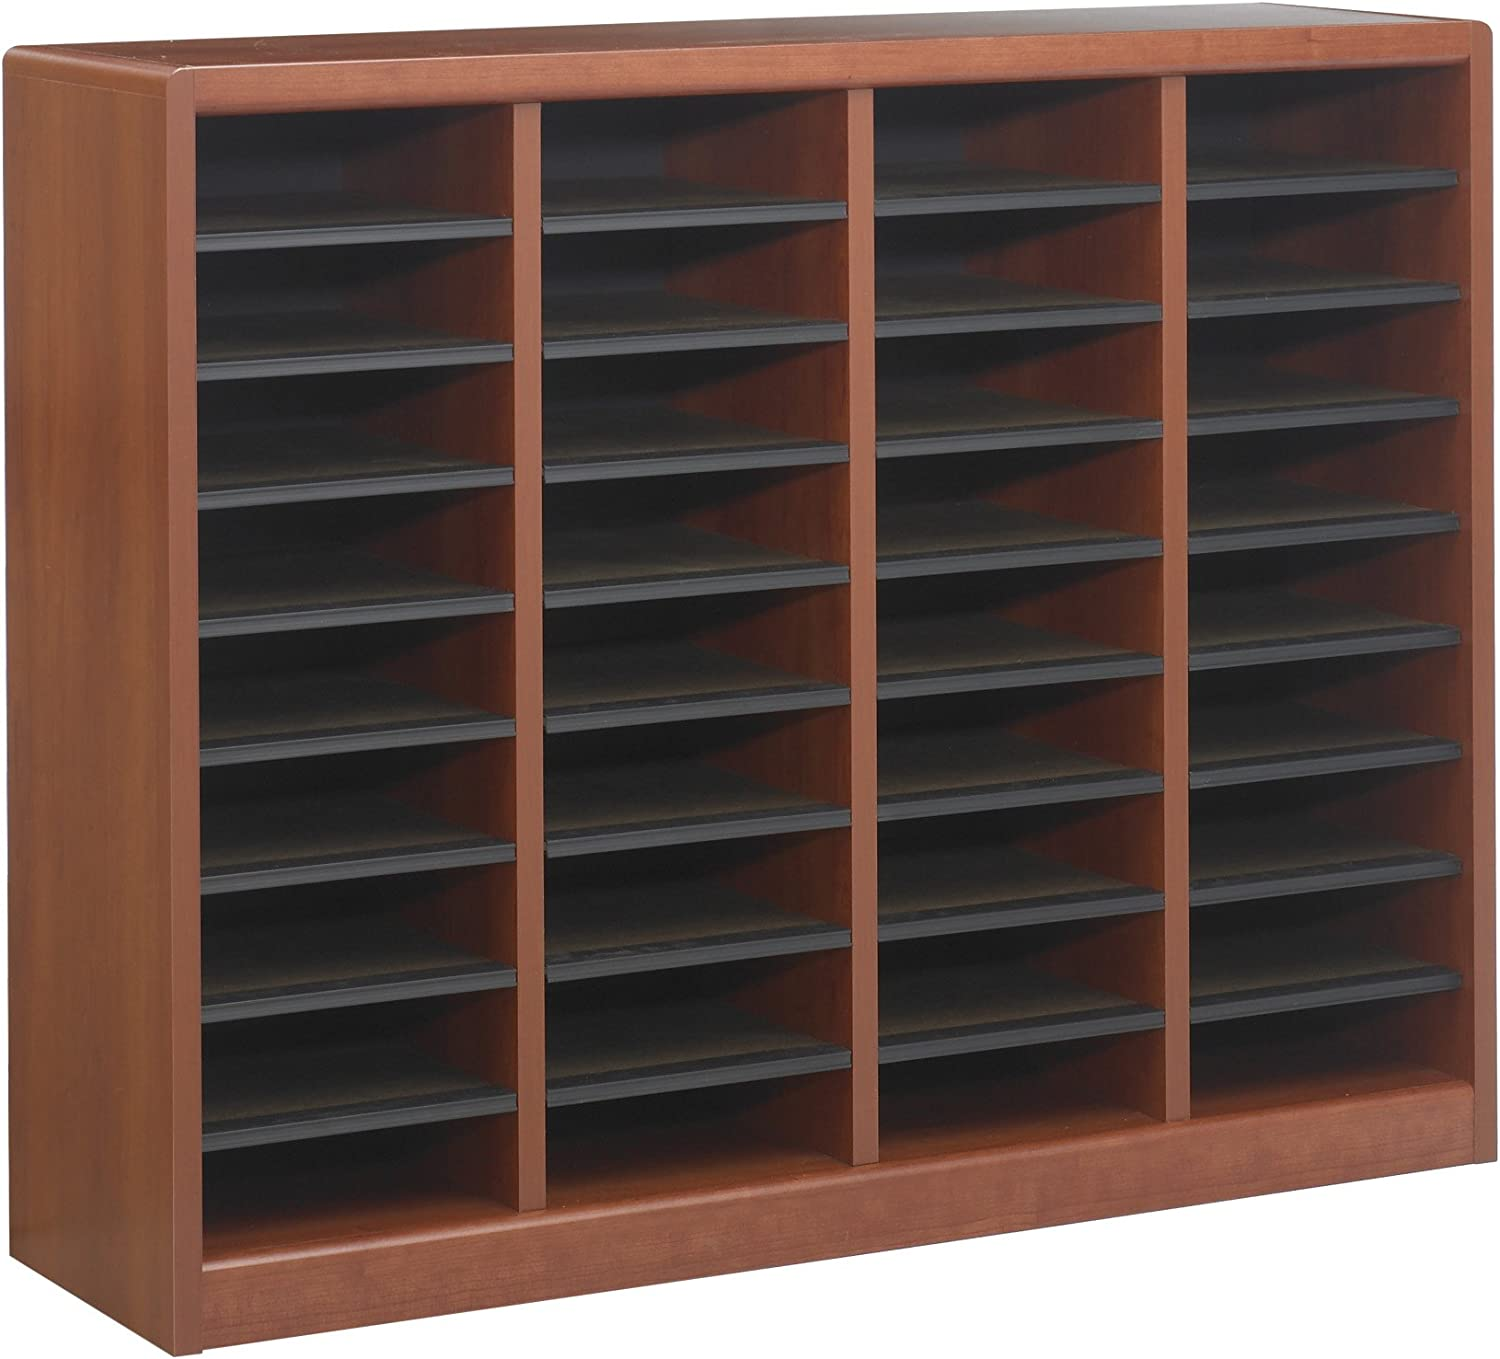 Safco Products E-Z Stor Wood Literature Organizer, 36 Compartment, 9321CY, Cherry, Durable Construction, Removable Shelves, Plastic Label Holders